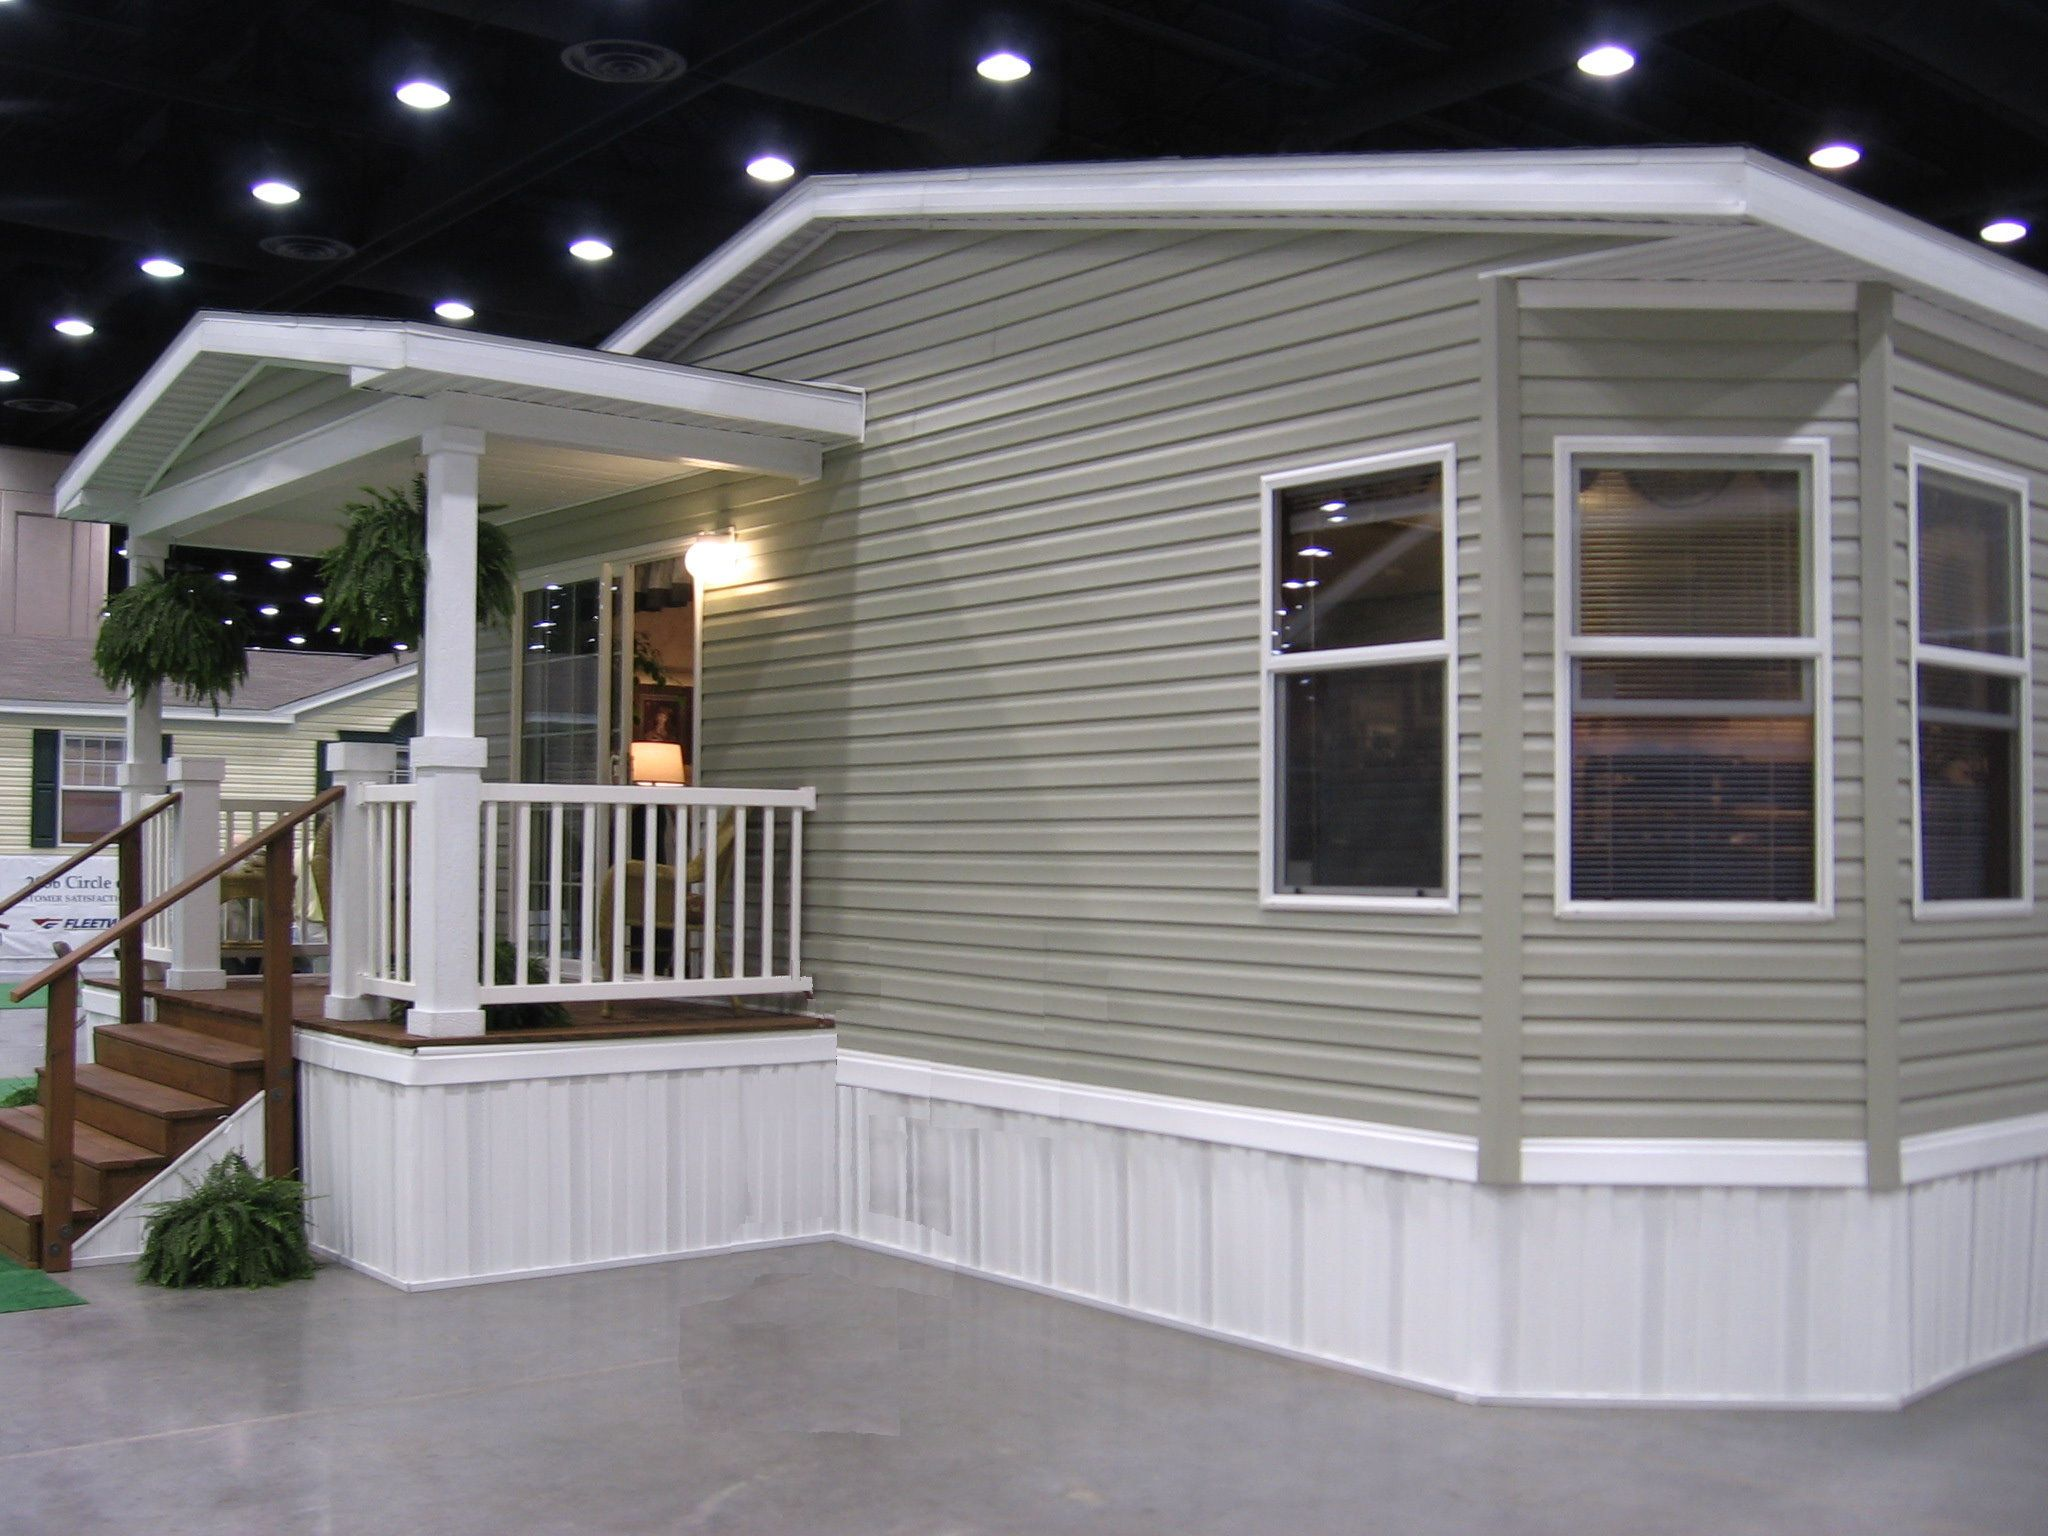 Mobile Home Deck Ideas | PORCH DESIGNS FOR MOBILE HOMES « Home Plans U0026 Home  Design